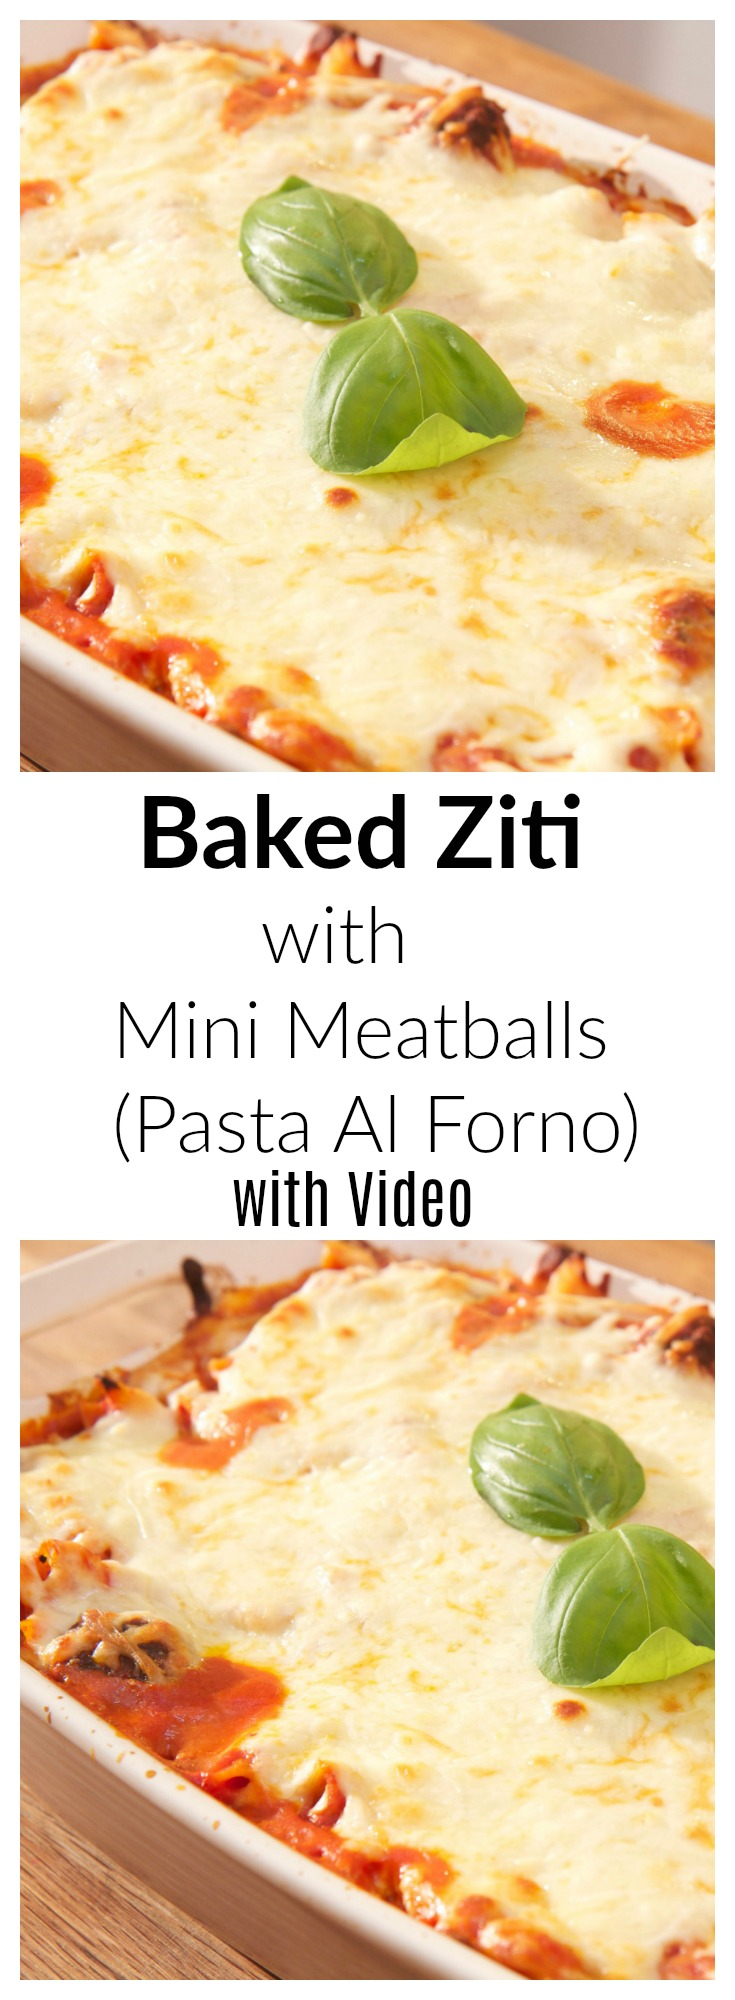 Baked Ziti with Mini Meatballs - recipe with video